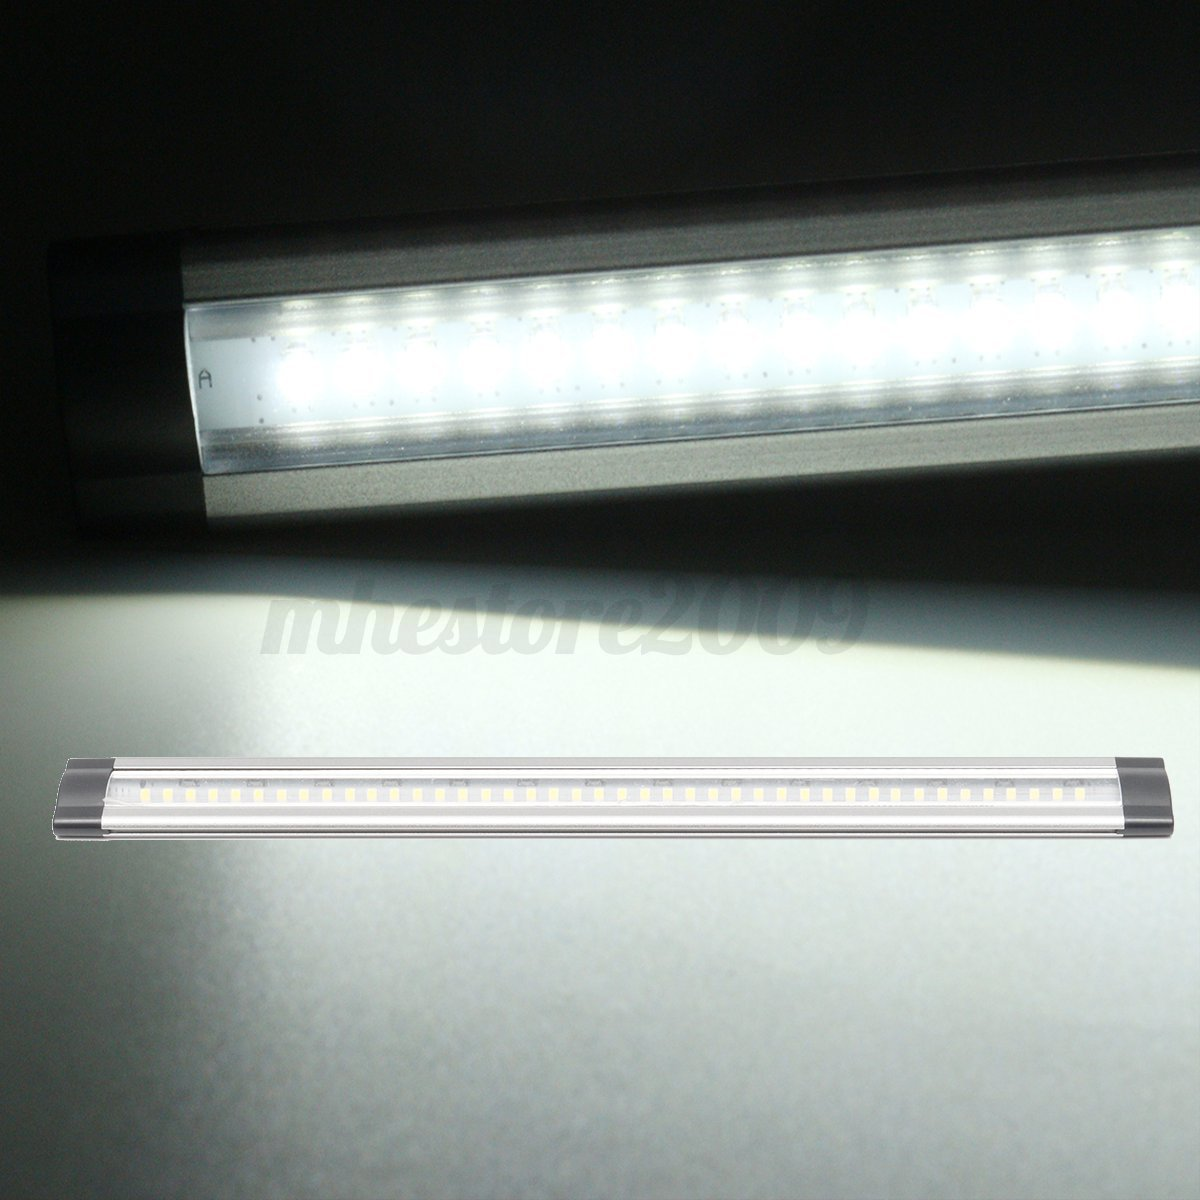 50cm home kitchen under cabinet shelf counter led strip light bar lighting lamp ebay for 50cm kitchen cabinets